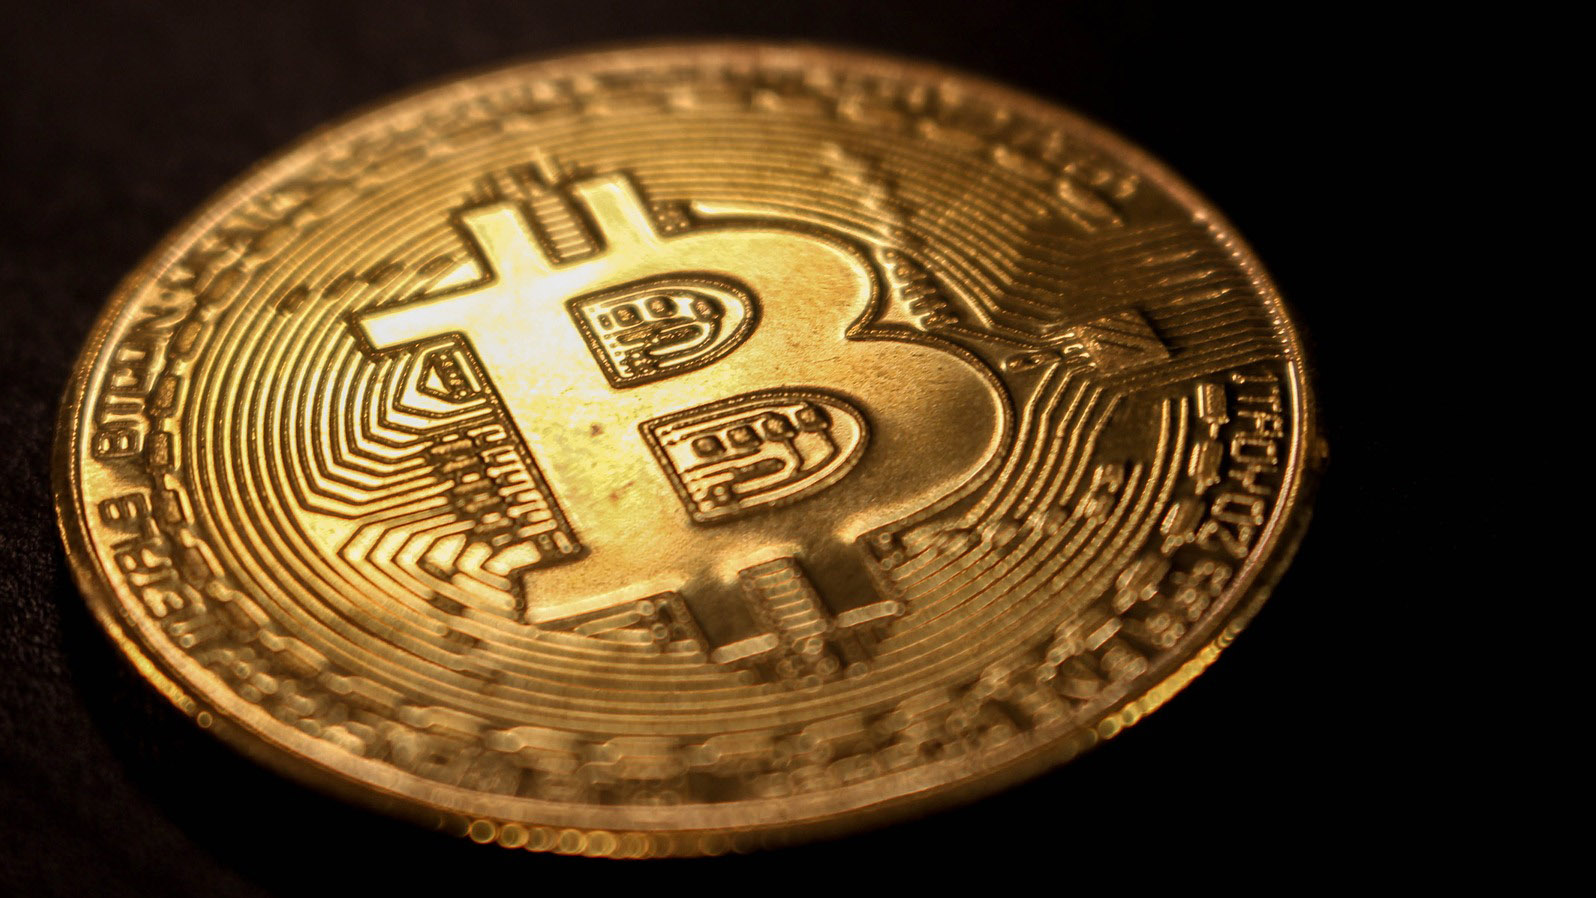 Ireland to enforce AML checks for digital currency firms from April in line with 5AMLD